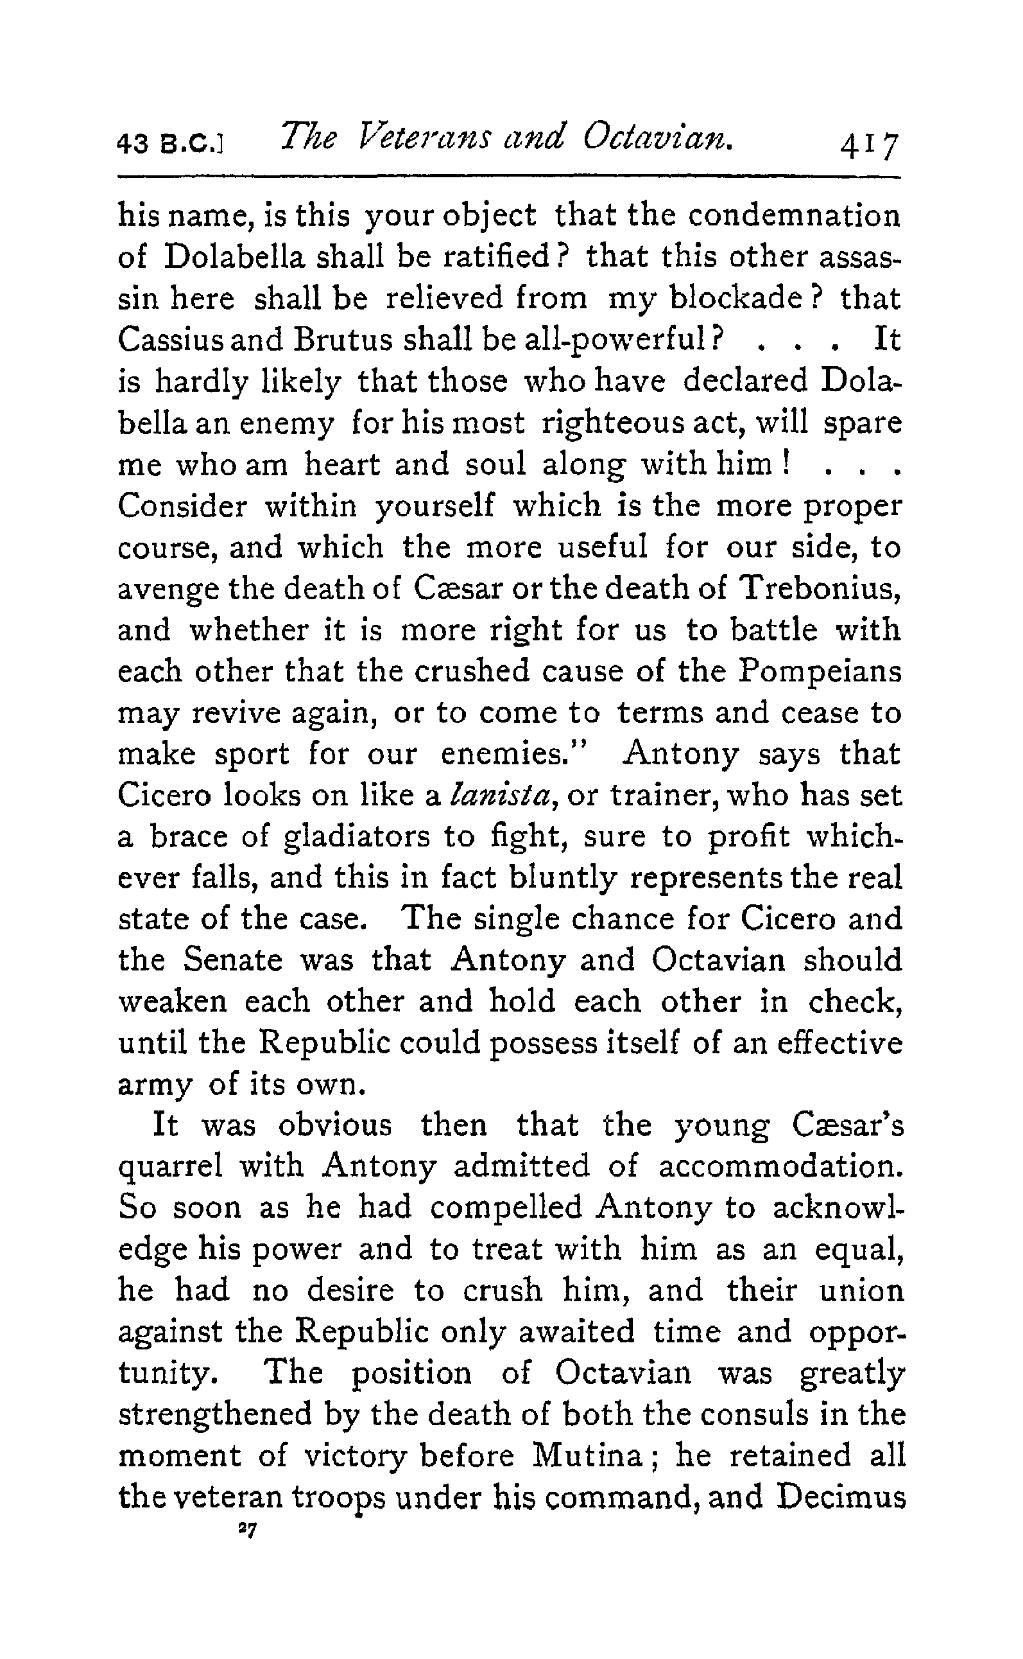 cicero caesar and the collapse of the republic essay The fall of the roman republic in this chapter, the lives and impact of caesar, octavian, antonius (antony) and even cleopatra, along with the continuing stories of men like pompey, crassus and cicero will be examined.